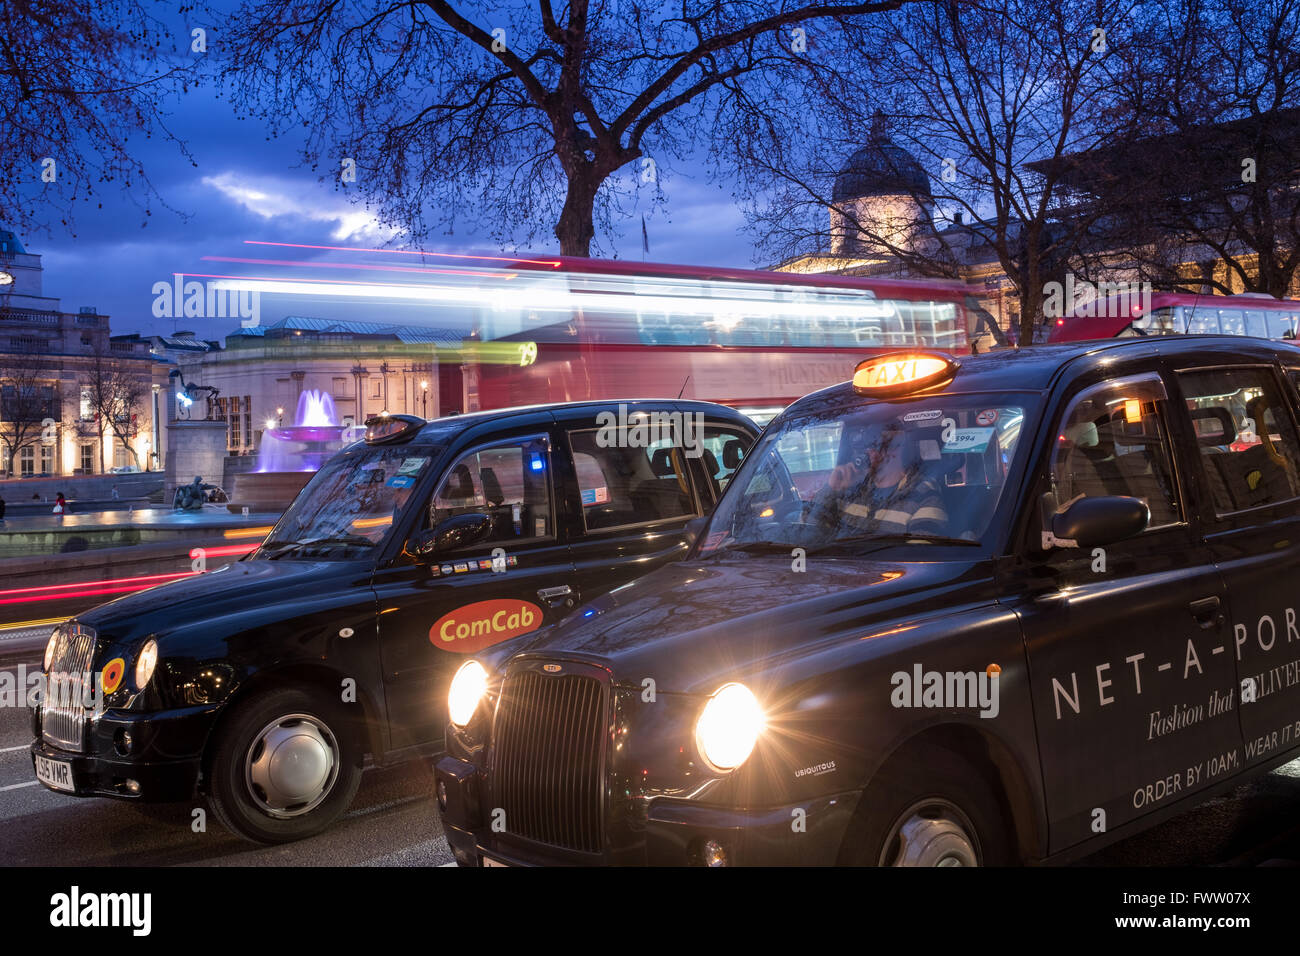 Two taxis and a bus at London's Trafalgar Square at Dusk. - Stock Image